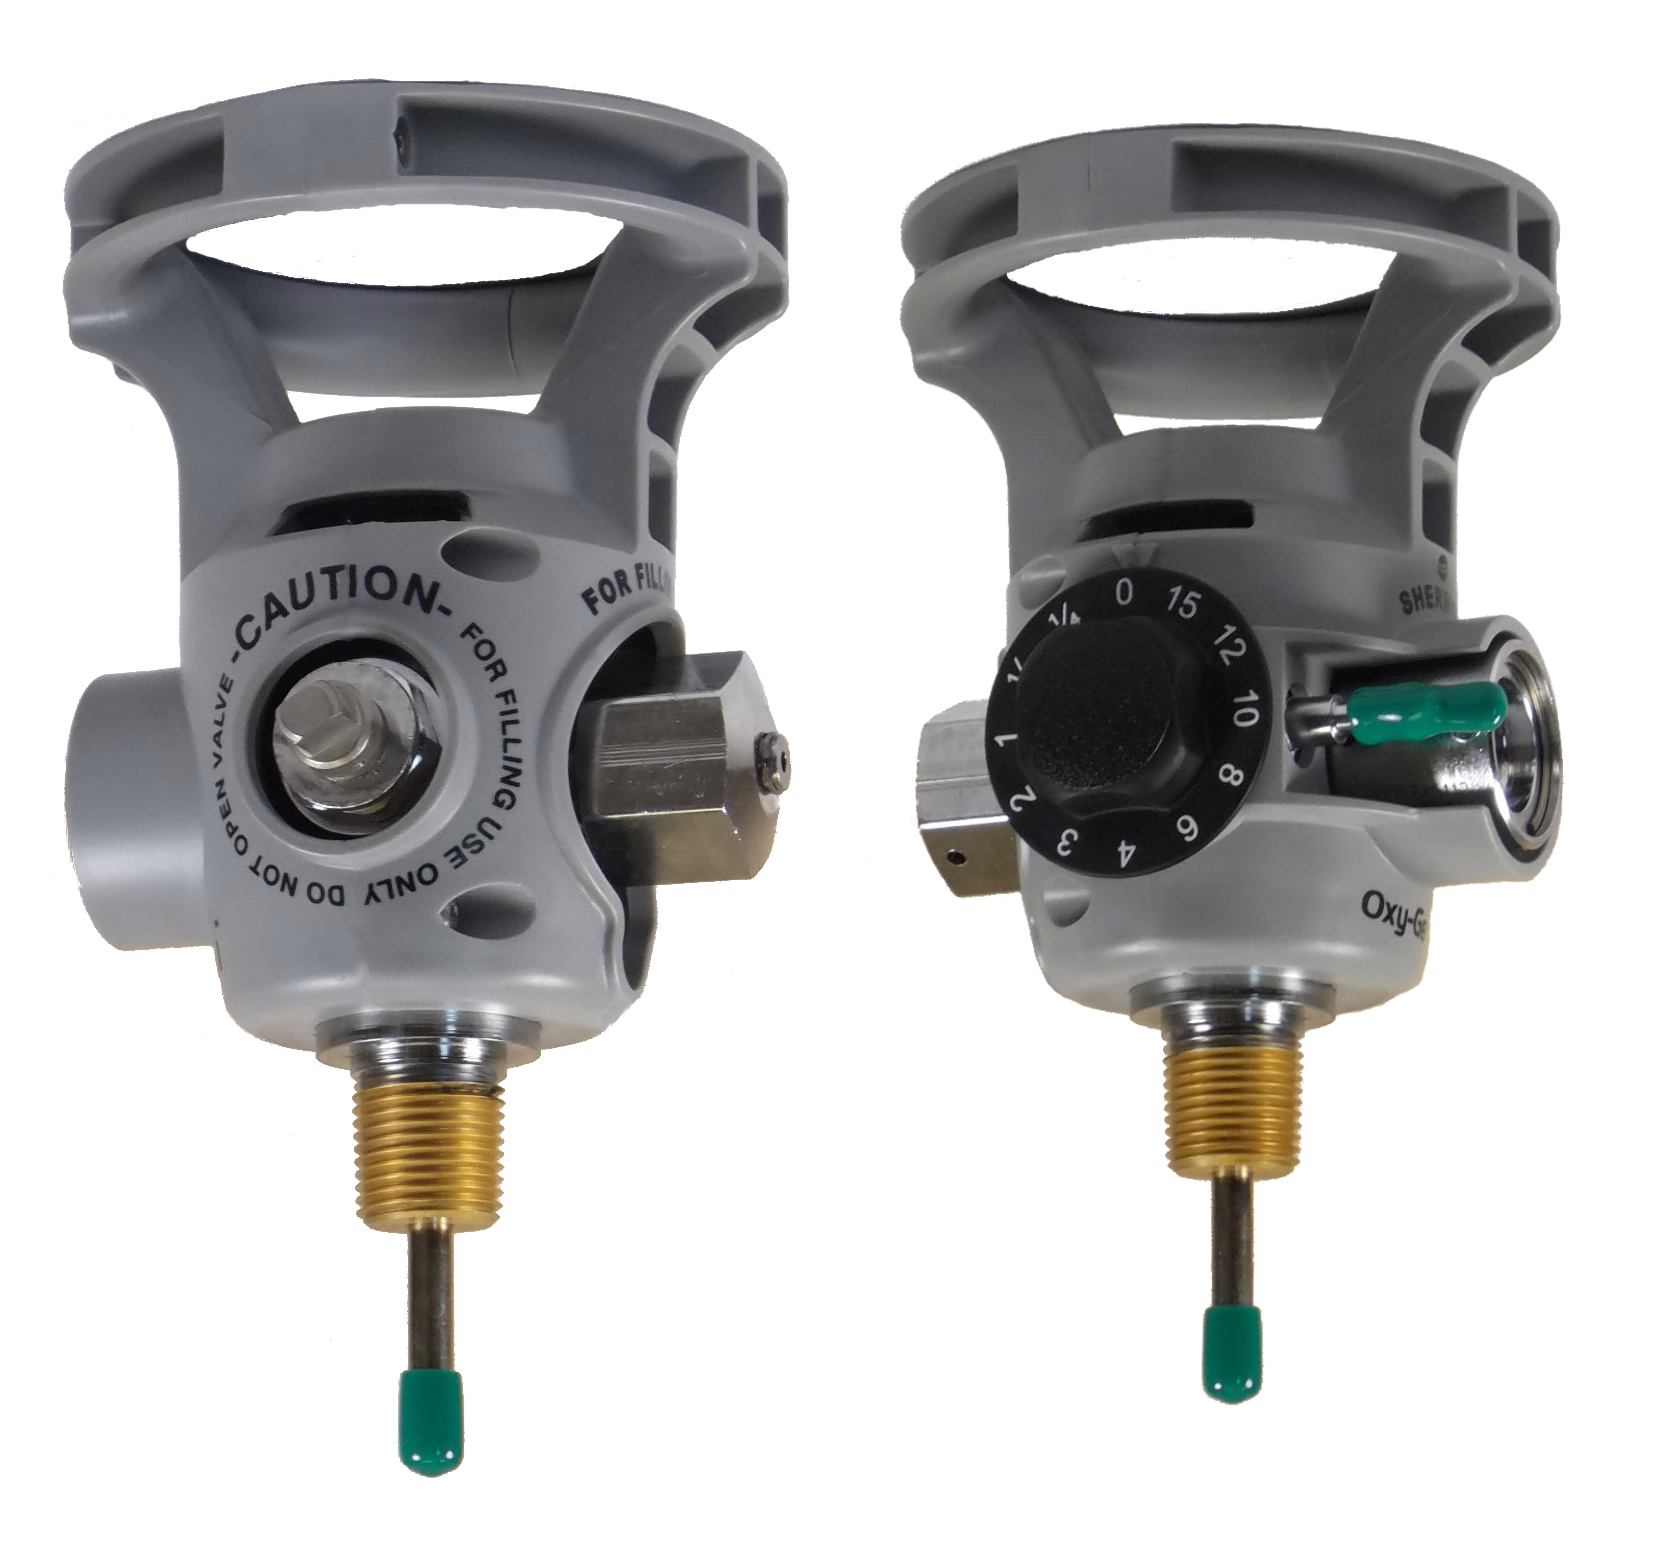 OxyGen 1 Series - Oxygen Valves with Integrated Pressure Regulars